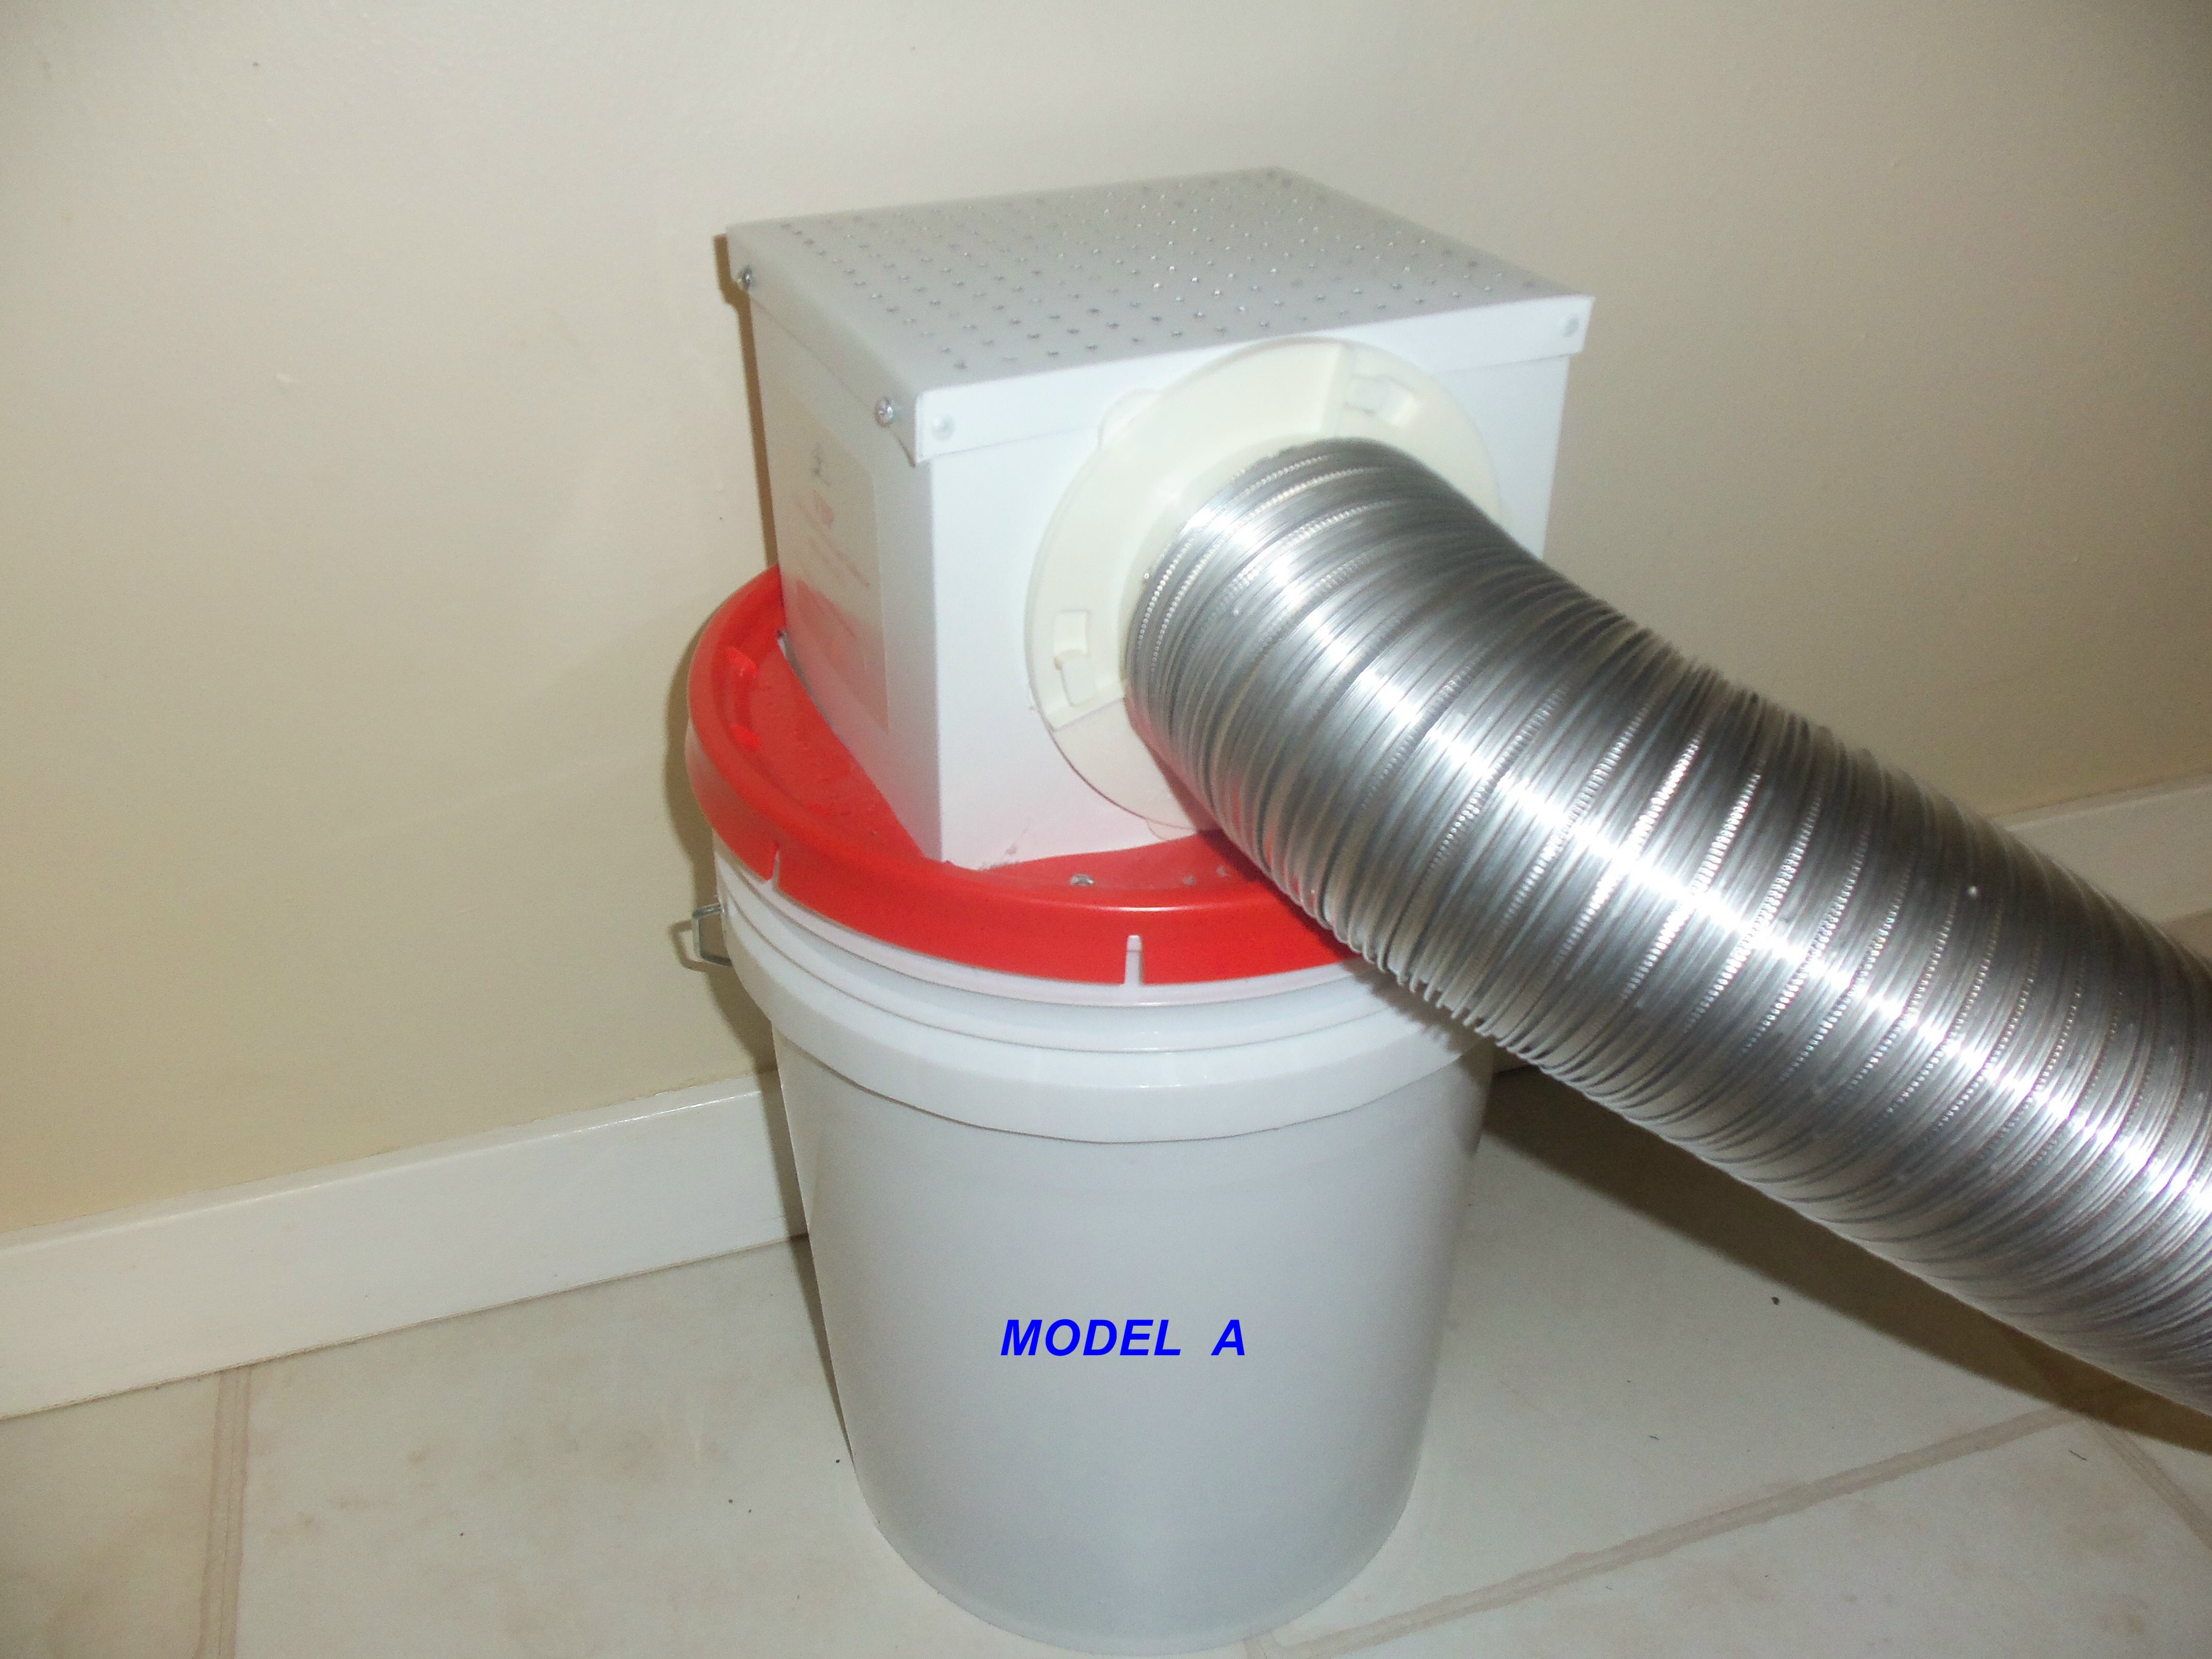 Dryer Vent That Can Be Used Inside A Home